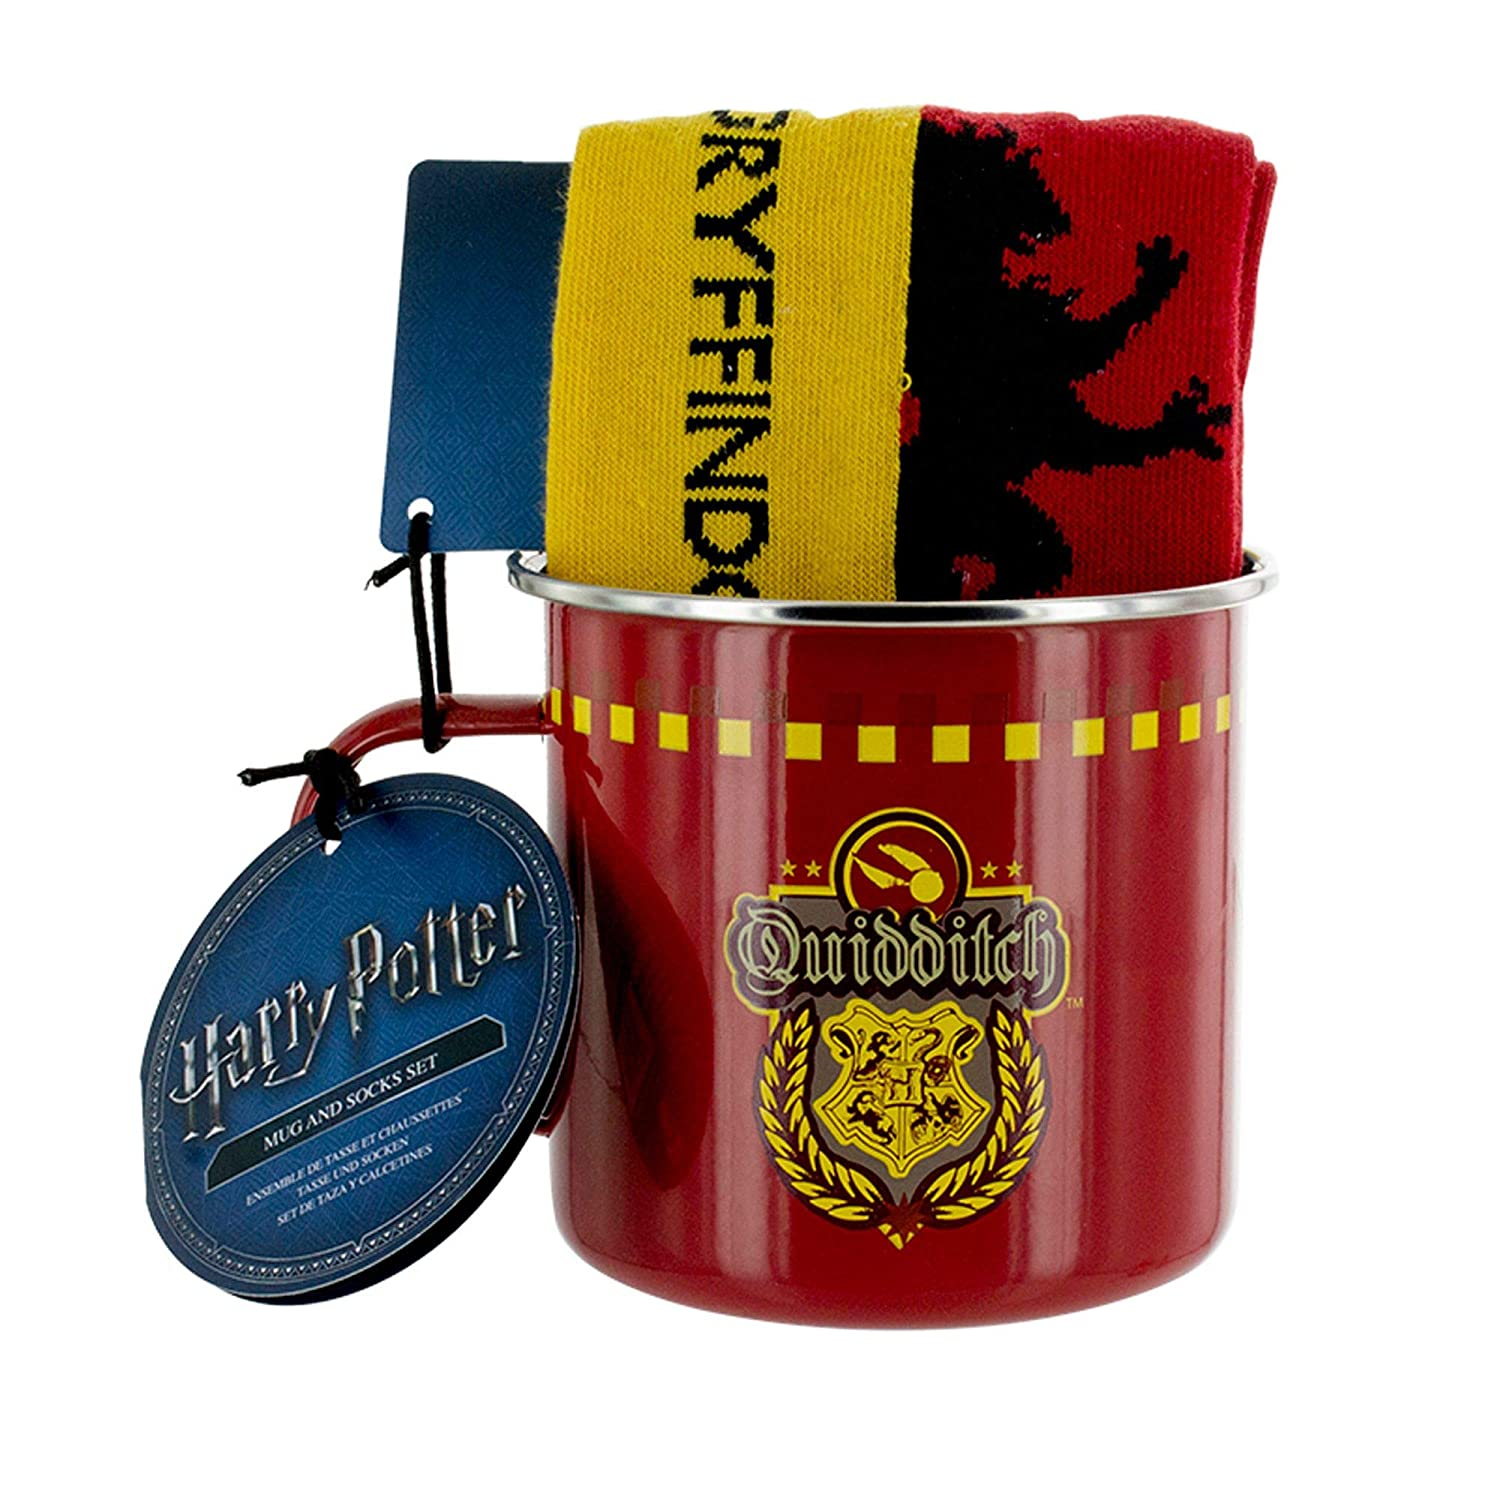 Amazon.com: Harry Potter Gryffindor Quidditch Tin Mug and Socks Set: Kitchen & Dining